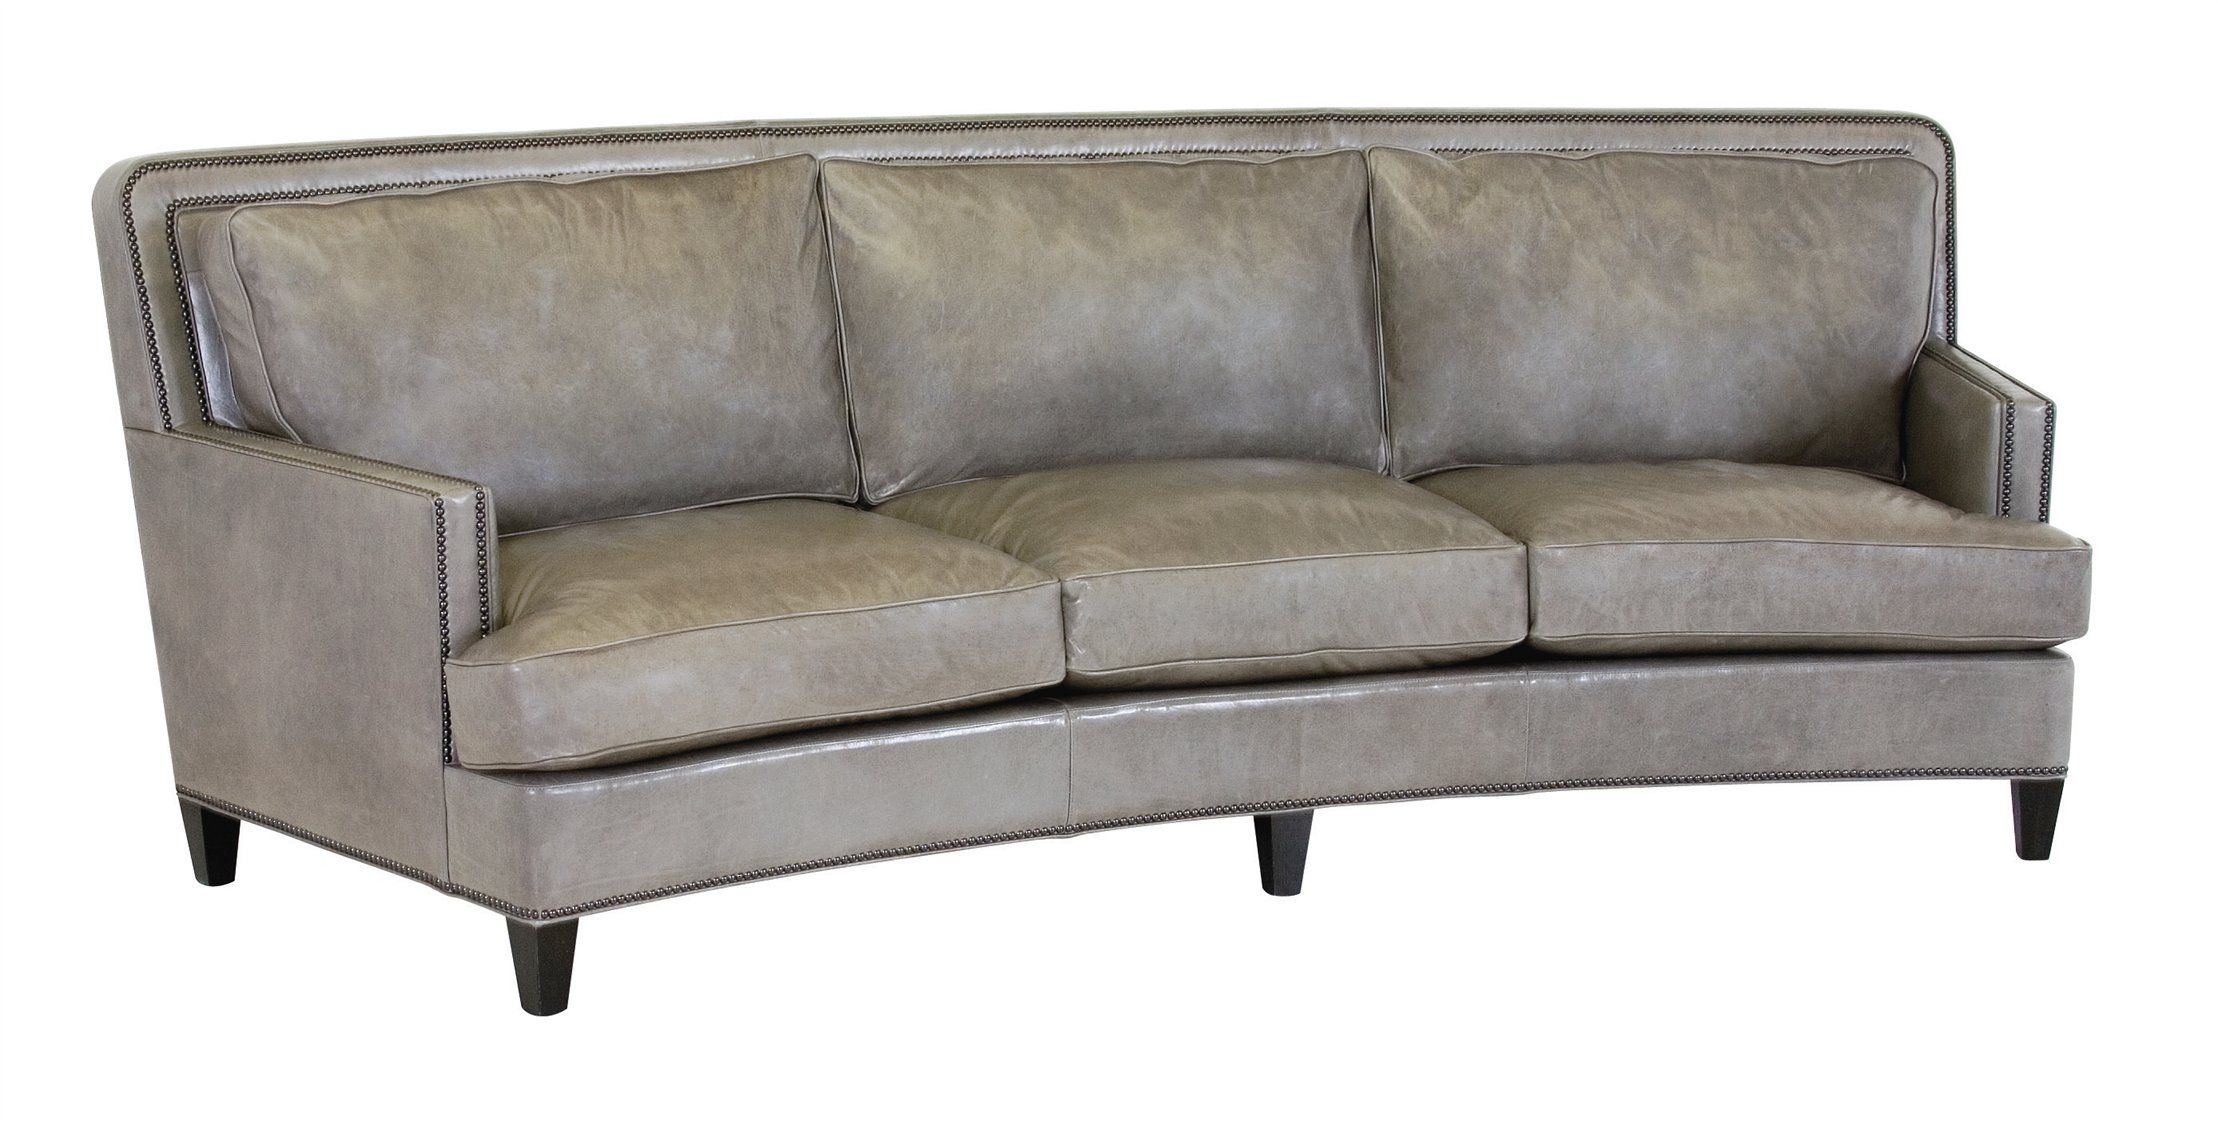 Excellent Curved Sofas For Sale Classic Leather Palermo Curved Sofa Download Free Architecture Designs Xaembritishbridgeorg